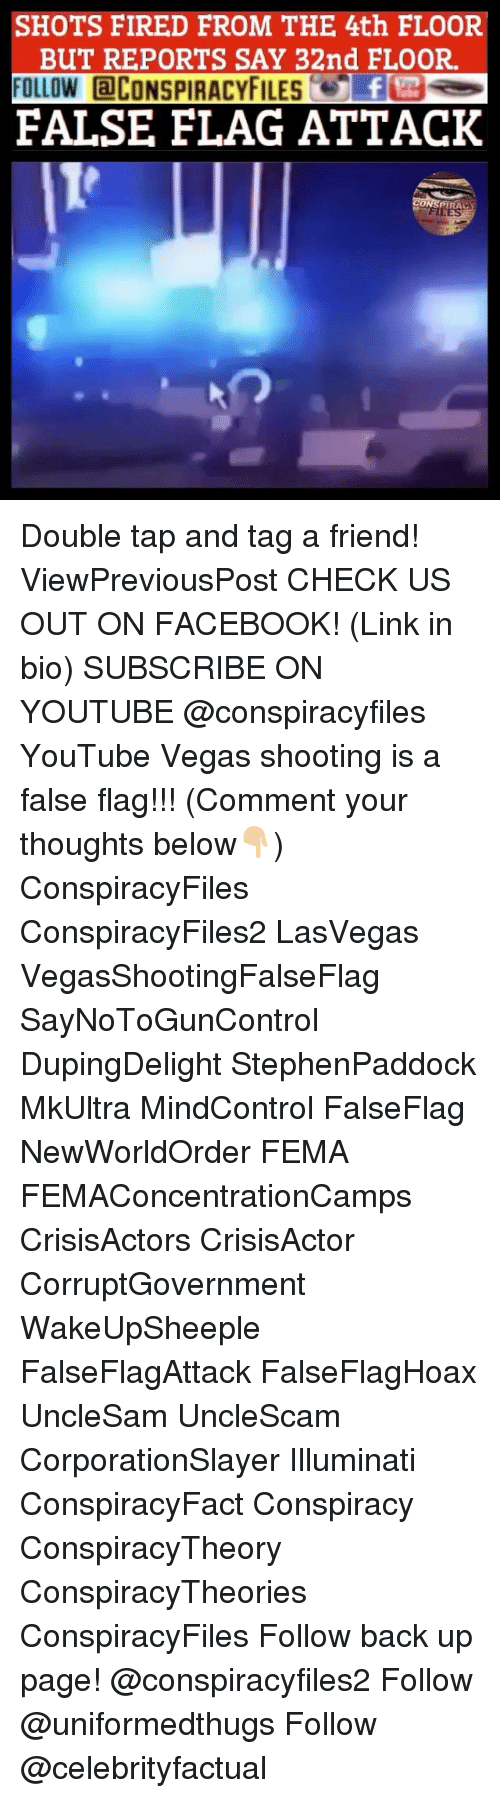 Facebook, Illuminati, and Memes: SHOTS FIRED FROM THE 4th FLOOR  BUT REPORTS SAY 32nd FLOOR  FOLLOW CONSPIRACYFILEf  FALSE FLAG ATTACK  PIRACY Double tap and tag a friend! ViewPreviousPost CHECK US OUT ON FACEBOOK! (Link in bio) SUBSCRIBE ON YOUTUBE @conspiracyfiles YouTube Vegas shooting is a false flag!!! (Comment your thoughts below👇🏼) ConspiracyFiles ConspiracyFiles2 LasVegas VegasShootingFalseFlag SayNoToGunControl DupingDelight StephenPaddock MkUltra MindControl FalseFlag NewWorldOrder FEMA FEMAConcentrationCamps CrisisActors CrisisActor CorruptGovernment WakeUpSheeple FalseFlagAttack FalseFlagHoax UncleSam UncleScam CorporationSlayer Illuminati ConspiracyFact Conspiracy ConspiracyTheory ConspiracyTheories ConspiracyFiles Follow back up page! @conspiracyfiles2 Follow @uniformedthugs Follow @celebrityfactual